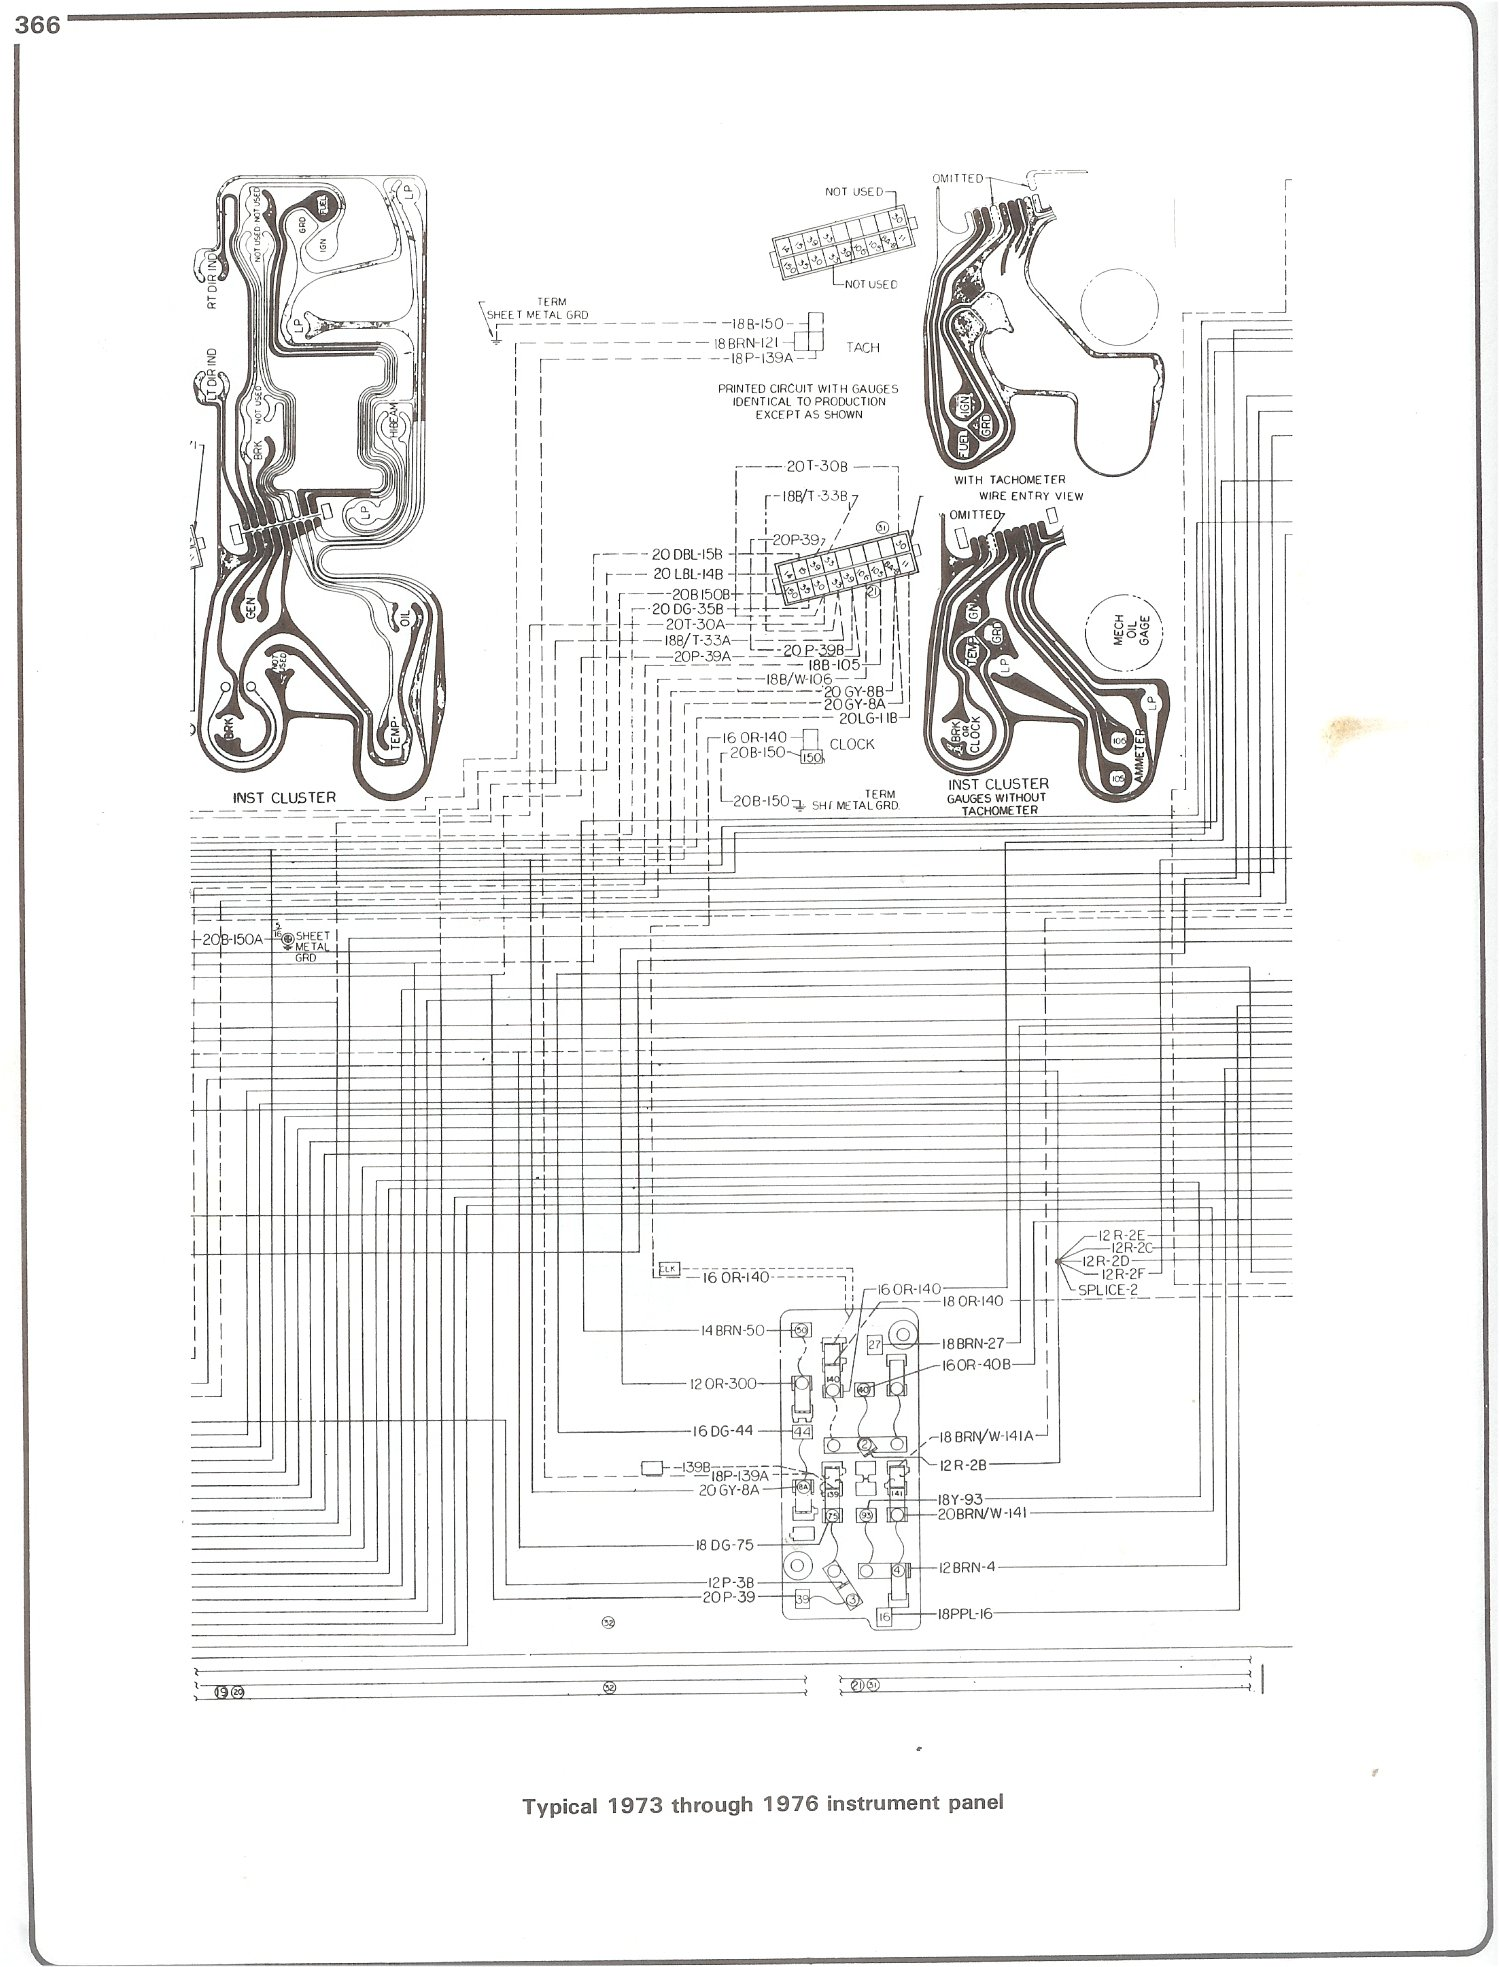 1982 Camaro Radio Wiring Diagram Also 1968 Chevy Truck Wiring Diagram